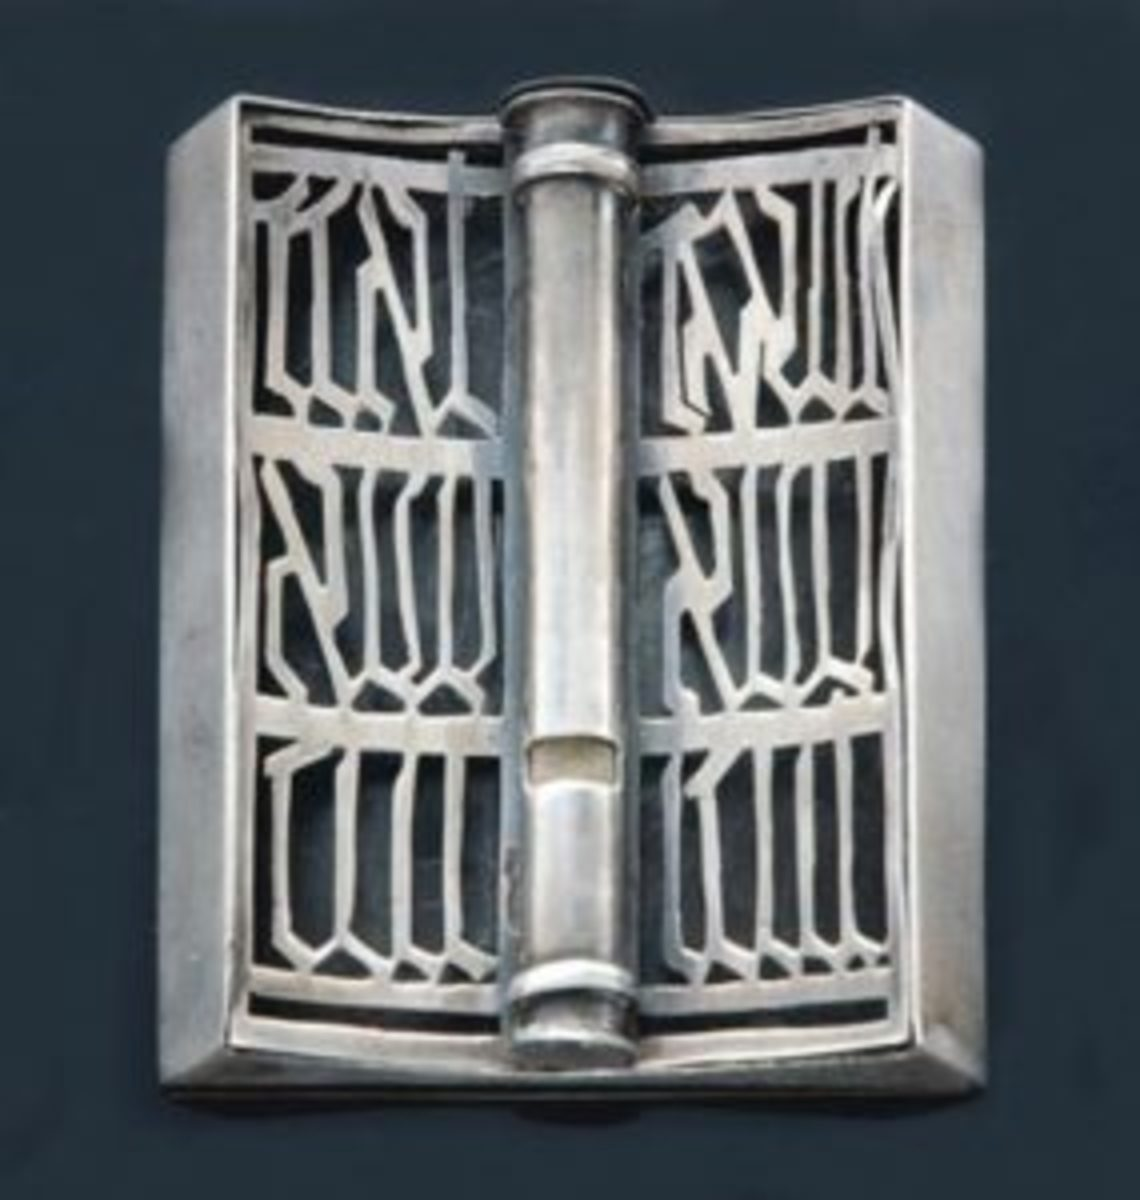 "Israeli sterling silver mezuzah, circa 1950, 2.55"" long, realized $345 including buyer's premium. Courtesy Tiroche Auction House, www.tiroche.co.il"